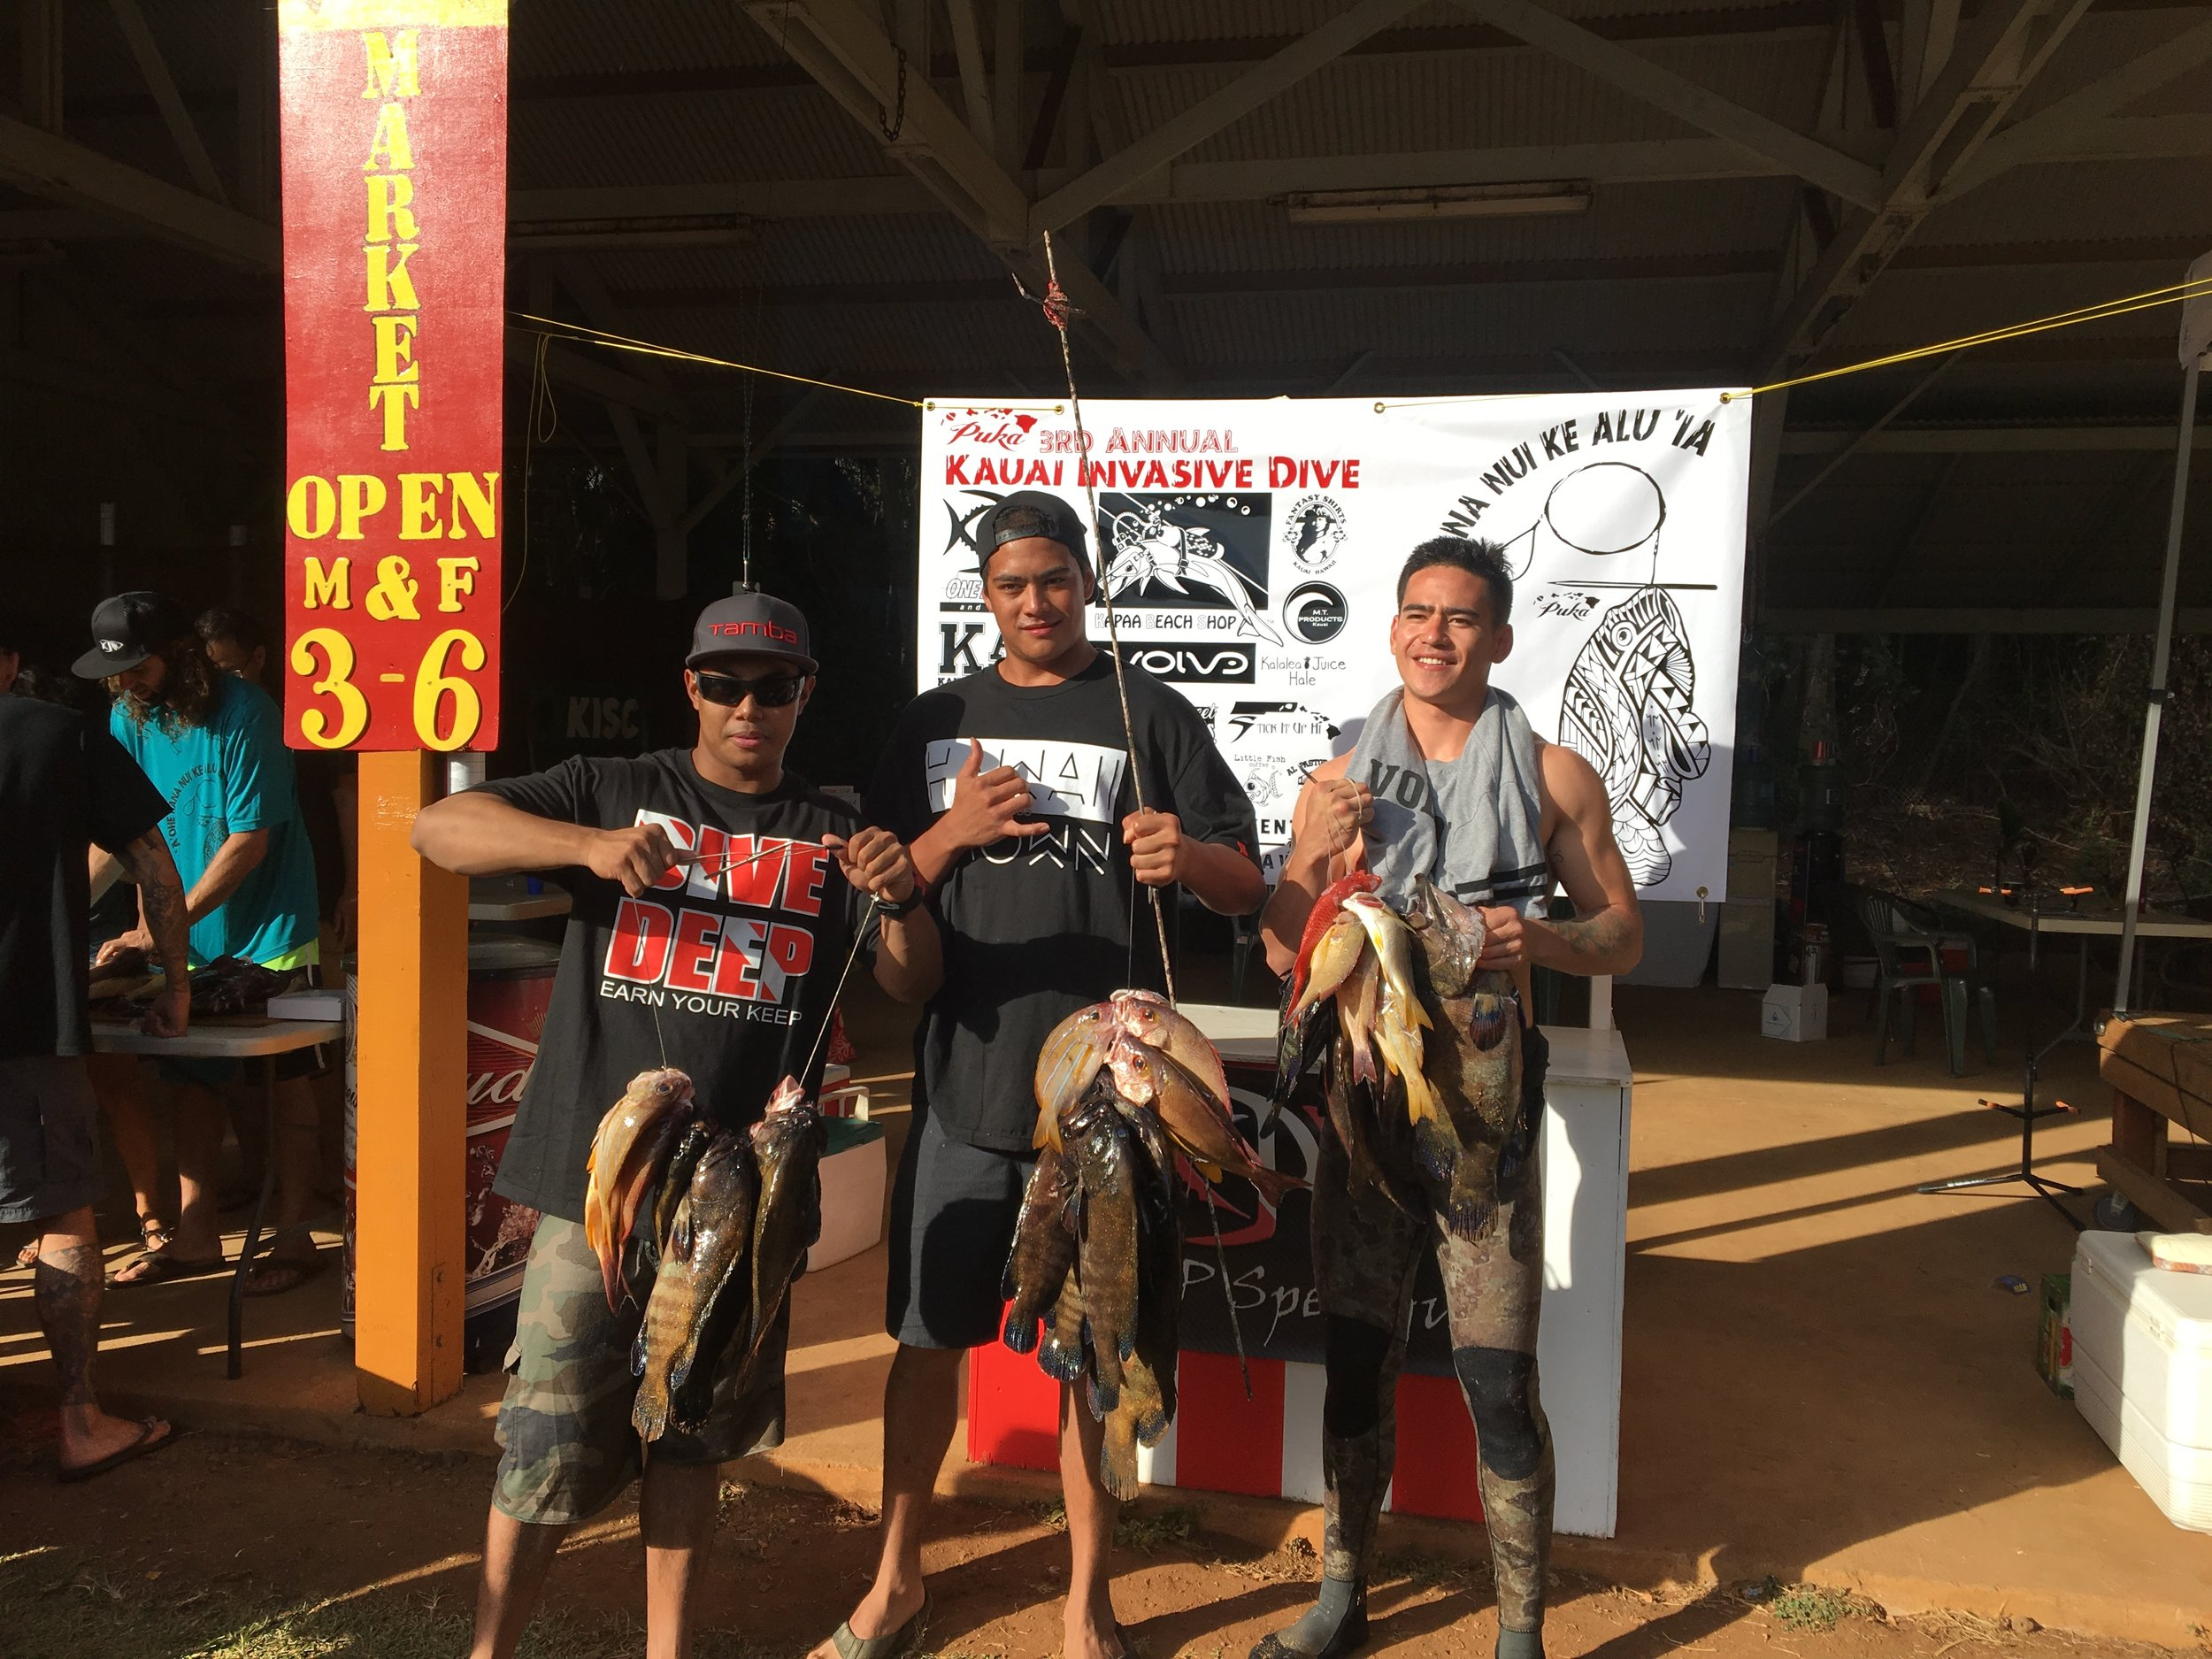 This Team Trio of Jundell Sagucio, Kawika Christian, and Michael Booth doing damage and taking home 1st place for the Largest Roi of the tournament at 5.9lbs, also top honors in a few other categories as well.